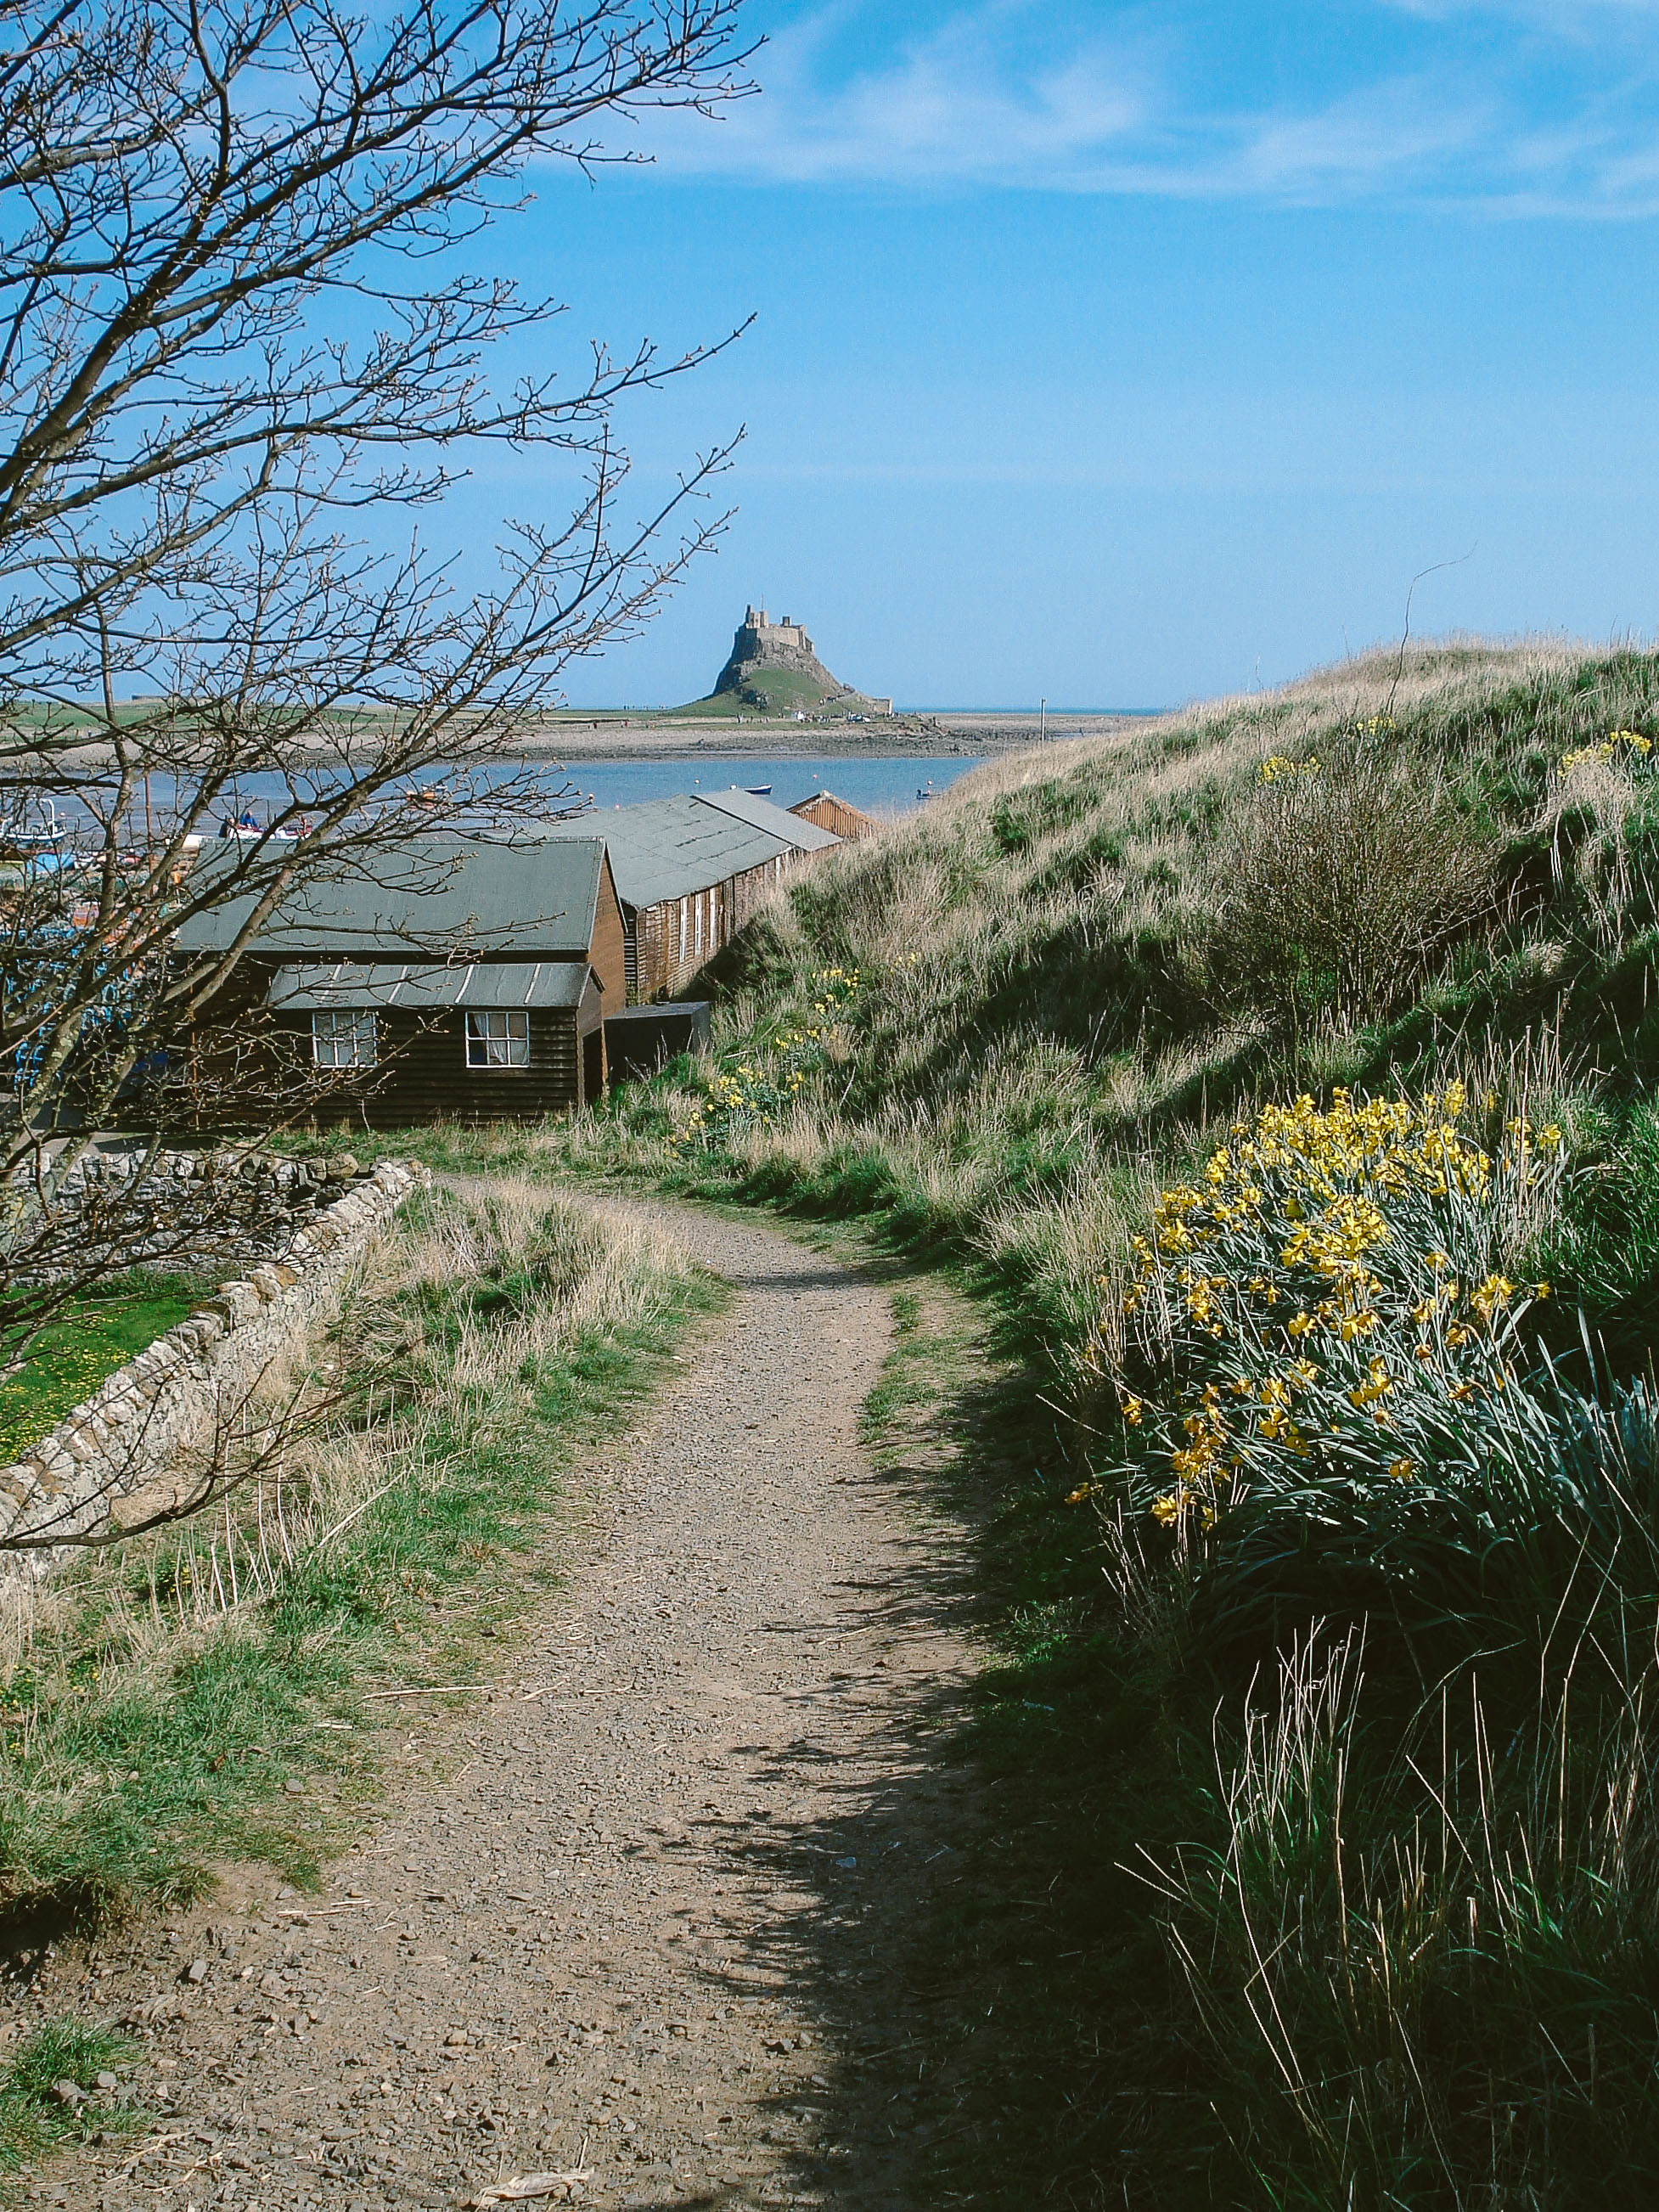 Lindisfarne Castle is one of the most spectacular wedding venues in Northumberland